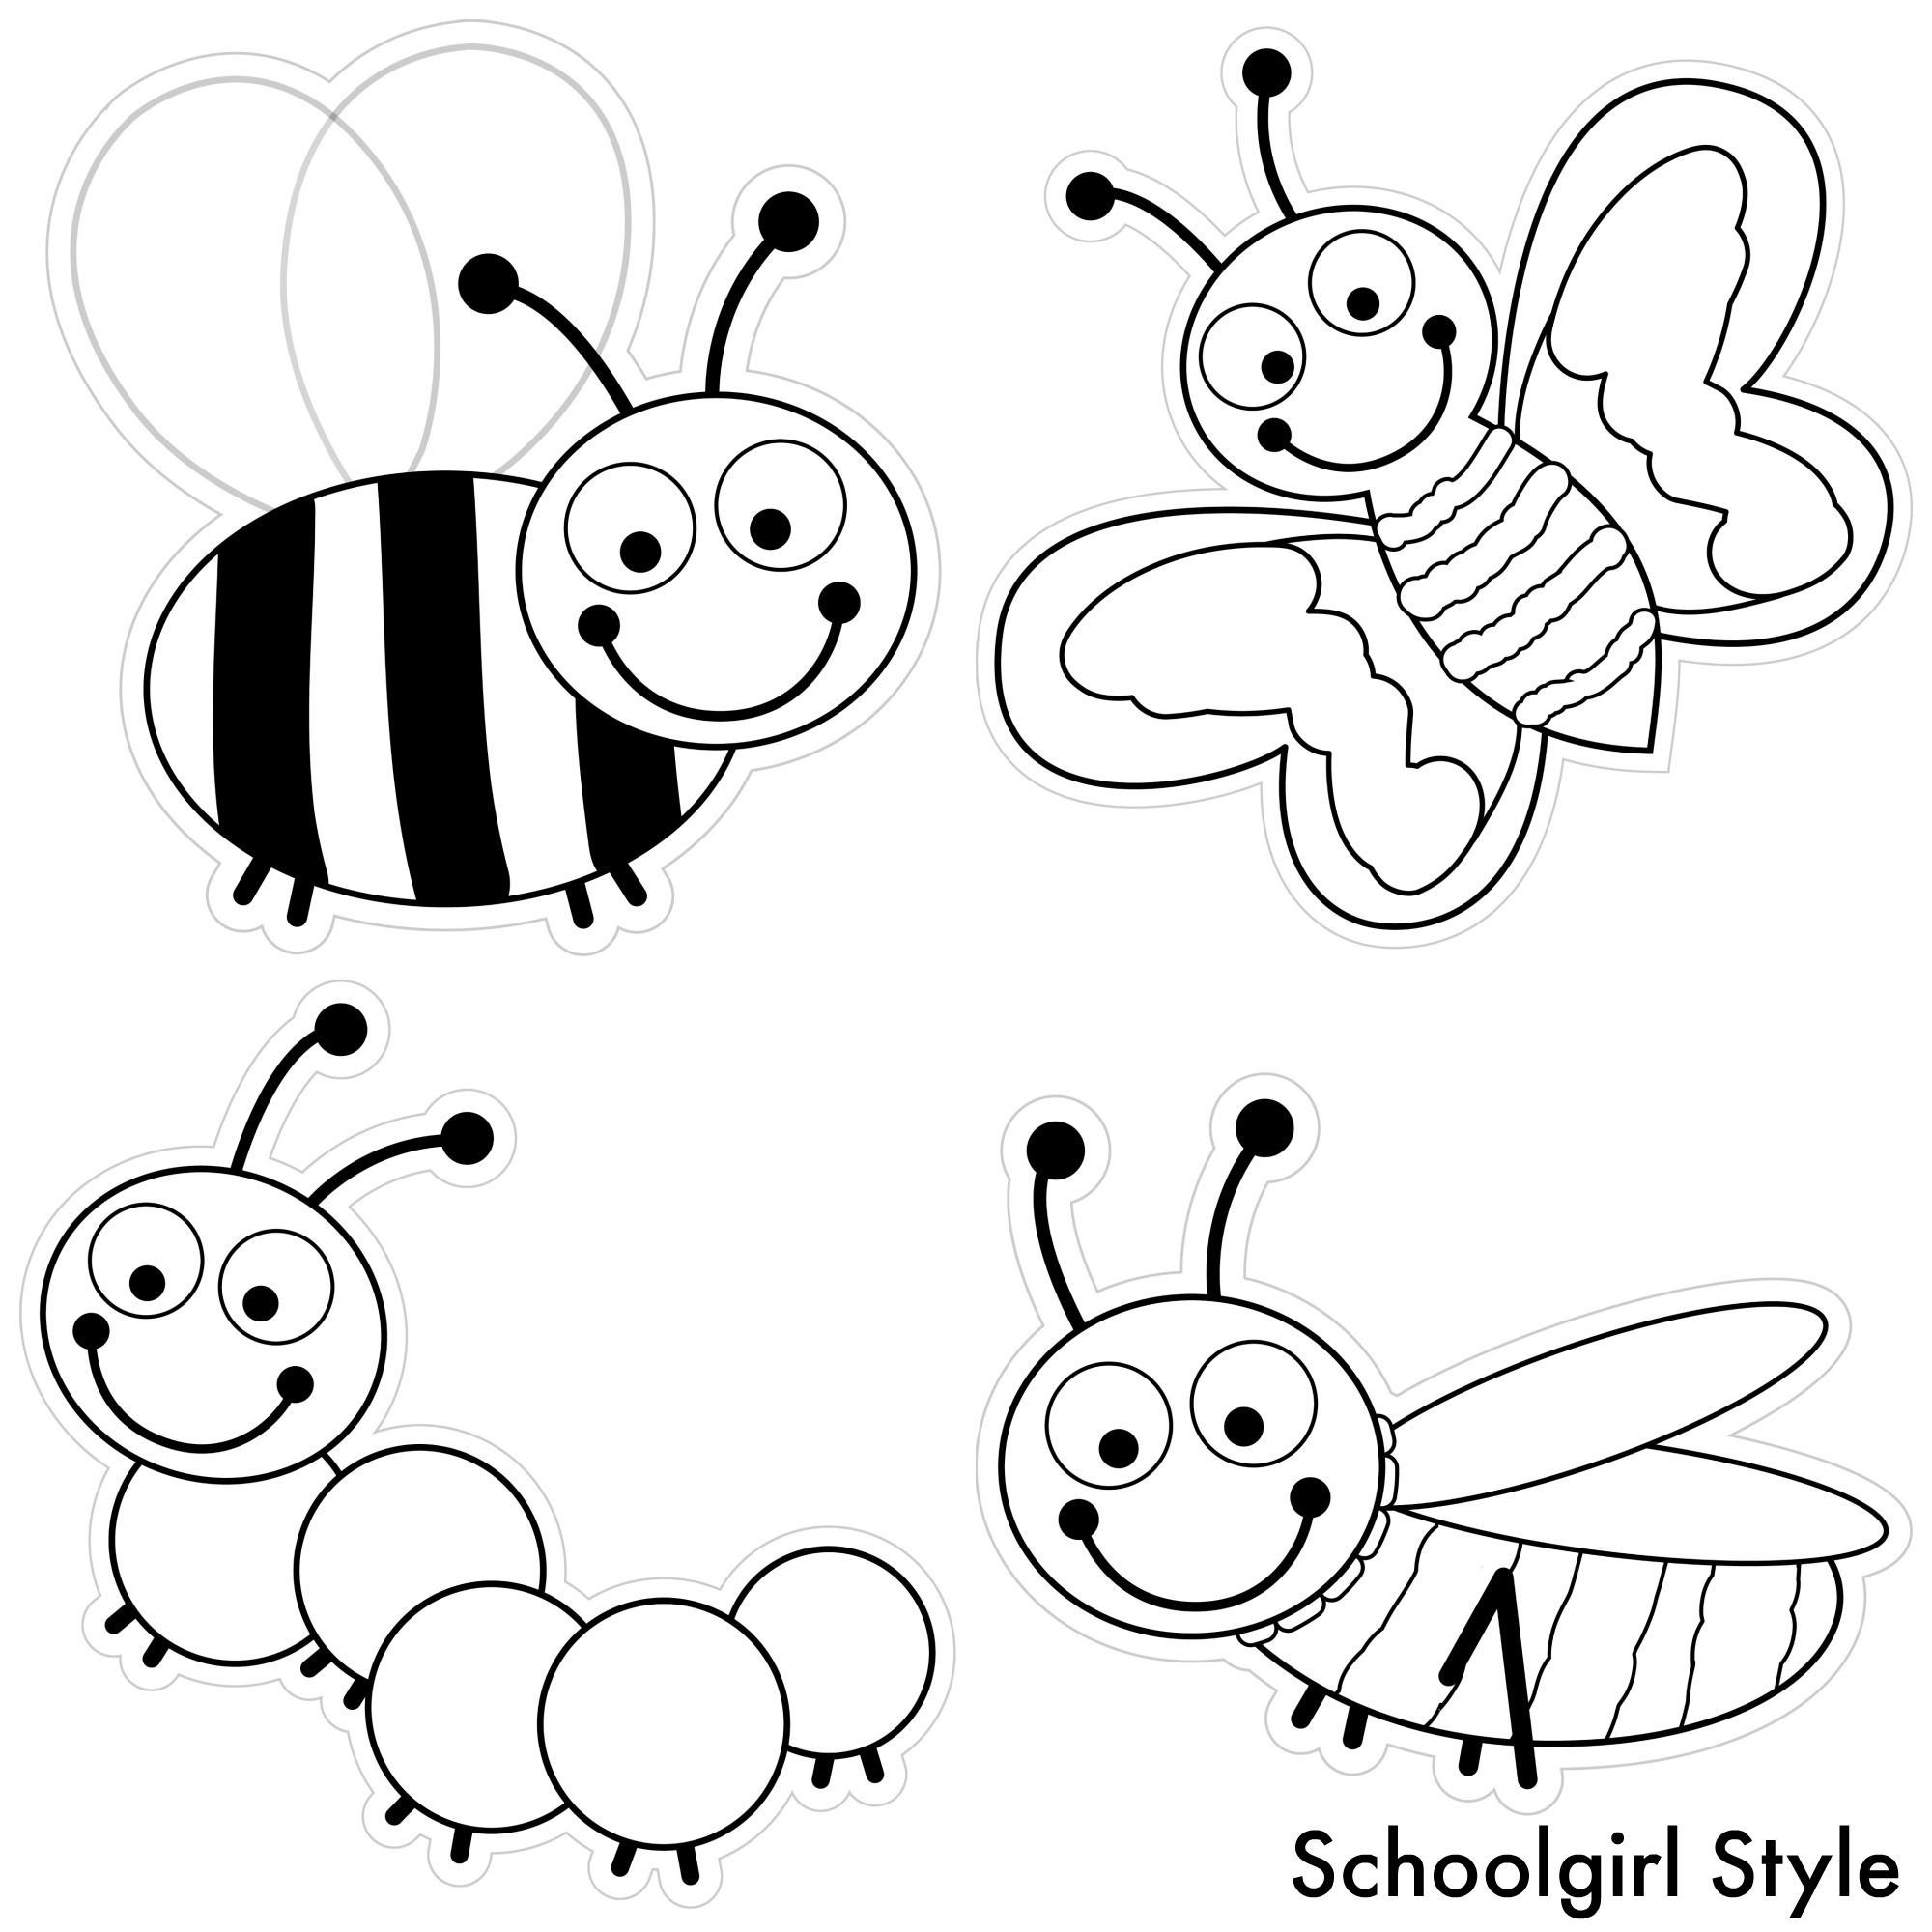 coloring pages bugs color my classroom bugs by schoolgirl style schoolgirlstyle bugs coloring pages